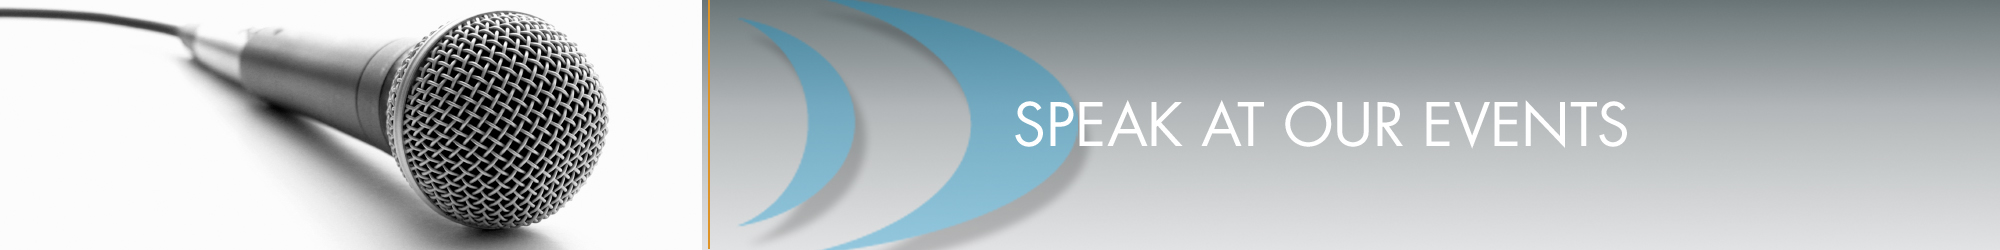 speak at events banner